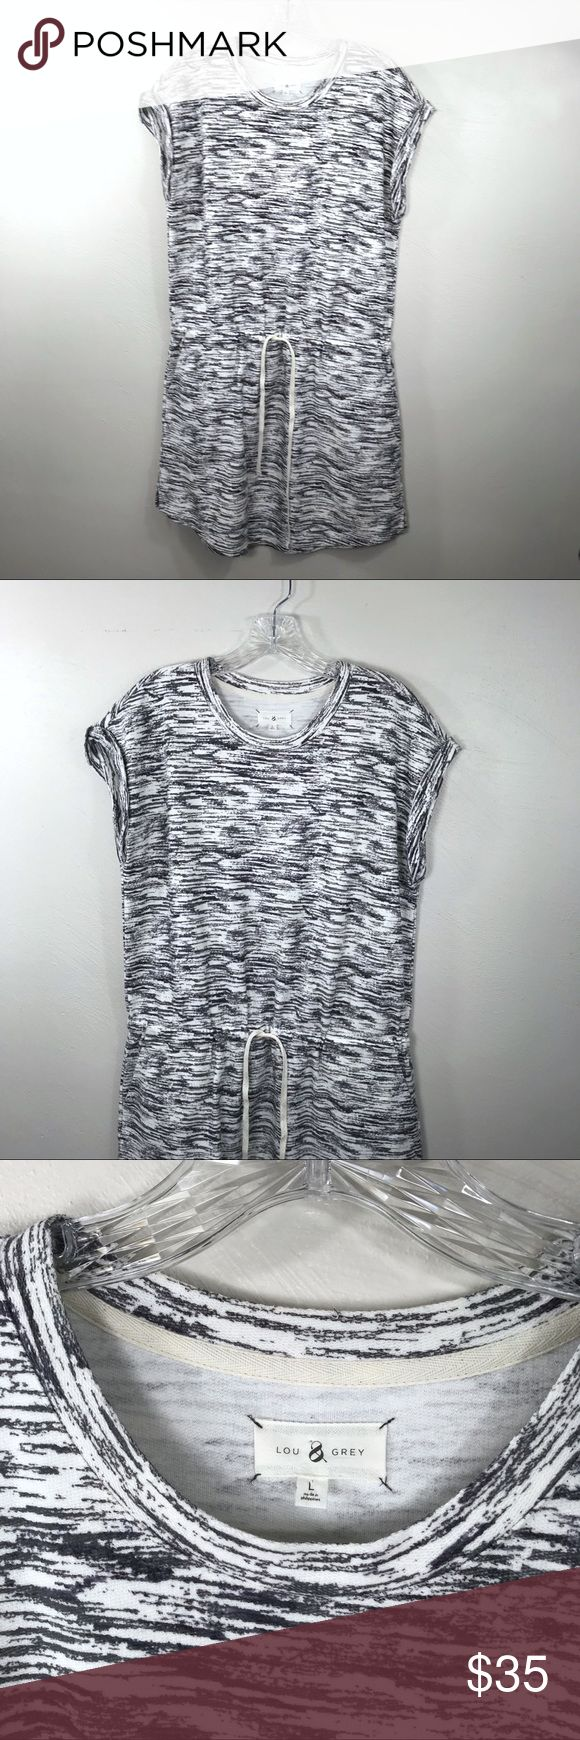 "Lou & Grey Dress Brand: Lou & grey Description: Short sleeve sweatshirt dress with a drawstring and pockets Color: Cream and gray Material: 100% cotton Size: Large Chest Measurement: 21.25"" across laying flat Length: 36.5"" from shoulder to hem Condition: Excellent Lou & Grey Dresses Mini"